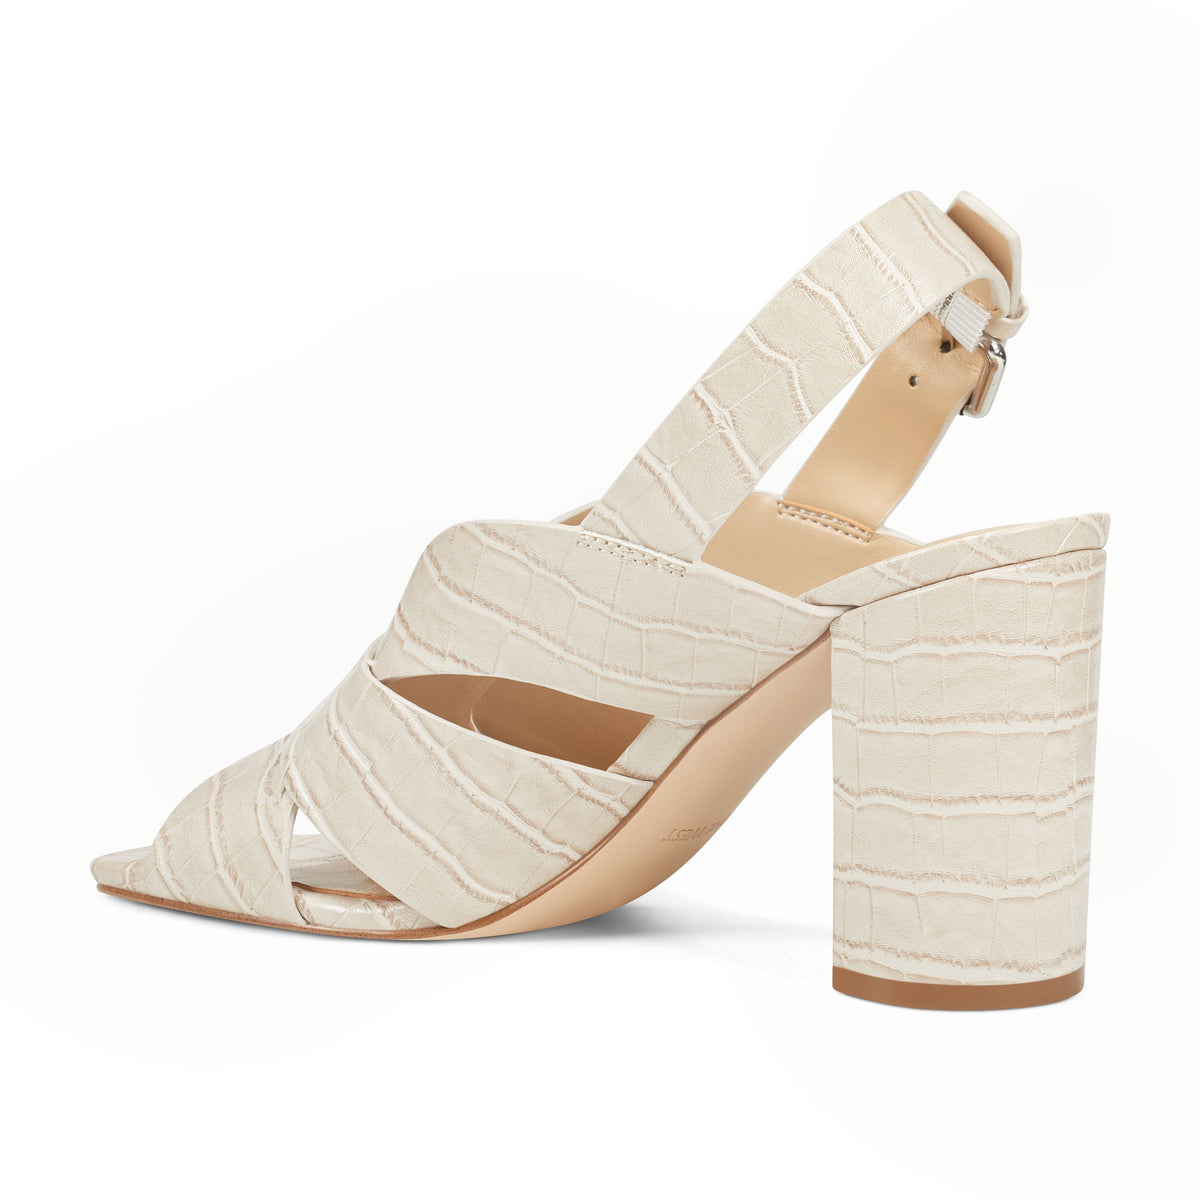 jordana-block-heel-sandals-in-natural-embossed-croco